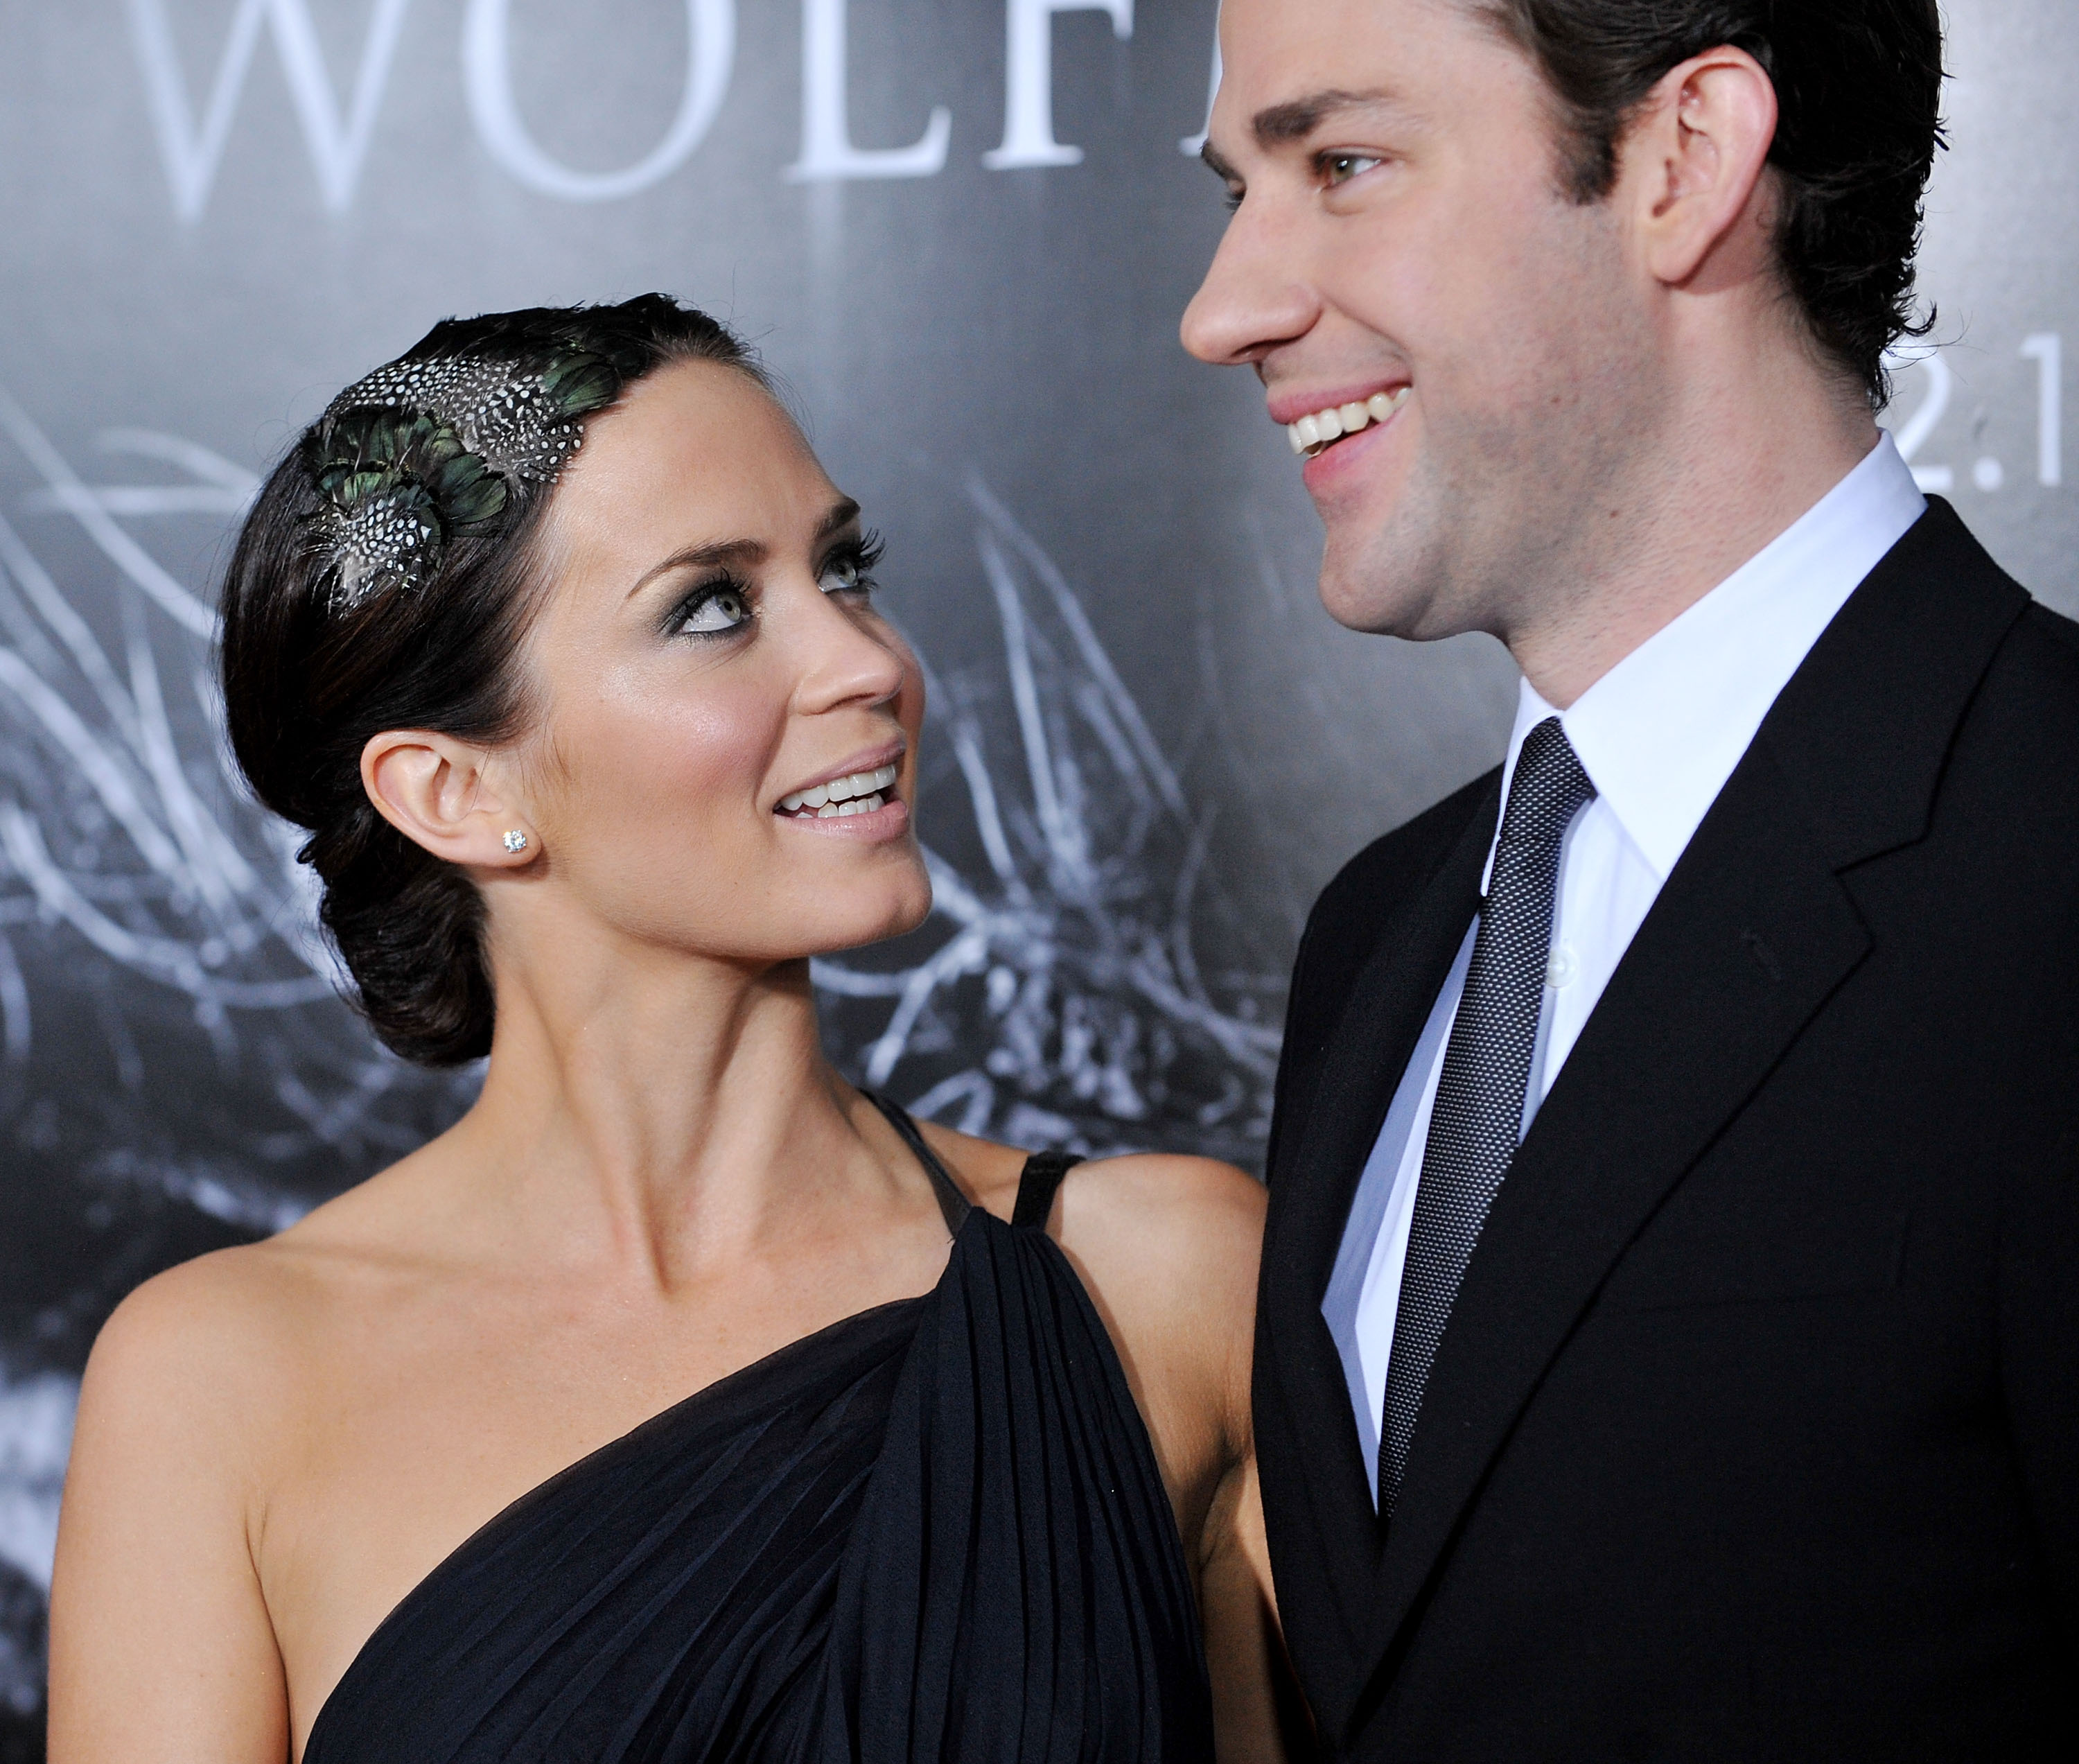 Actress Emily Blunt and fiance actor John Krasinski arrive at the Los Angeles Premiere  The Wolfman  at the ArcLight Cinemas on February 9, 2010 in Hollywood, California.